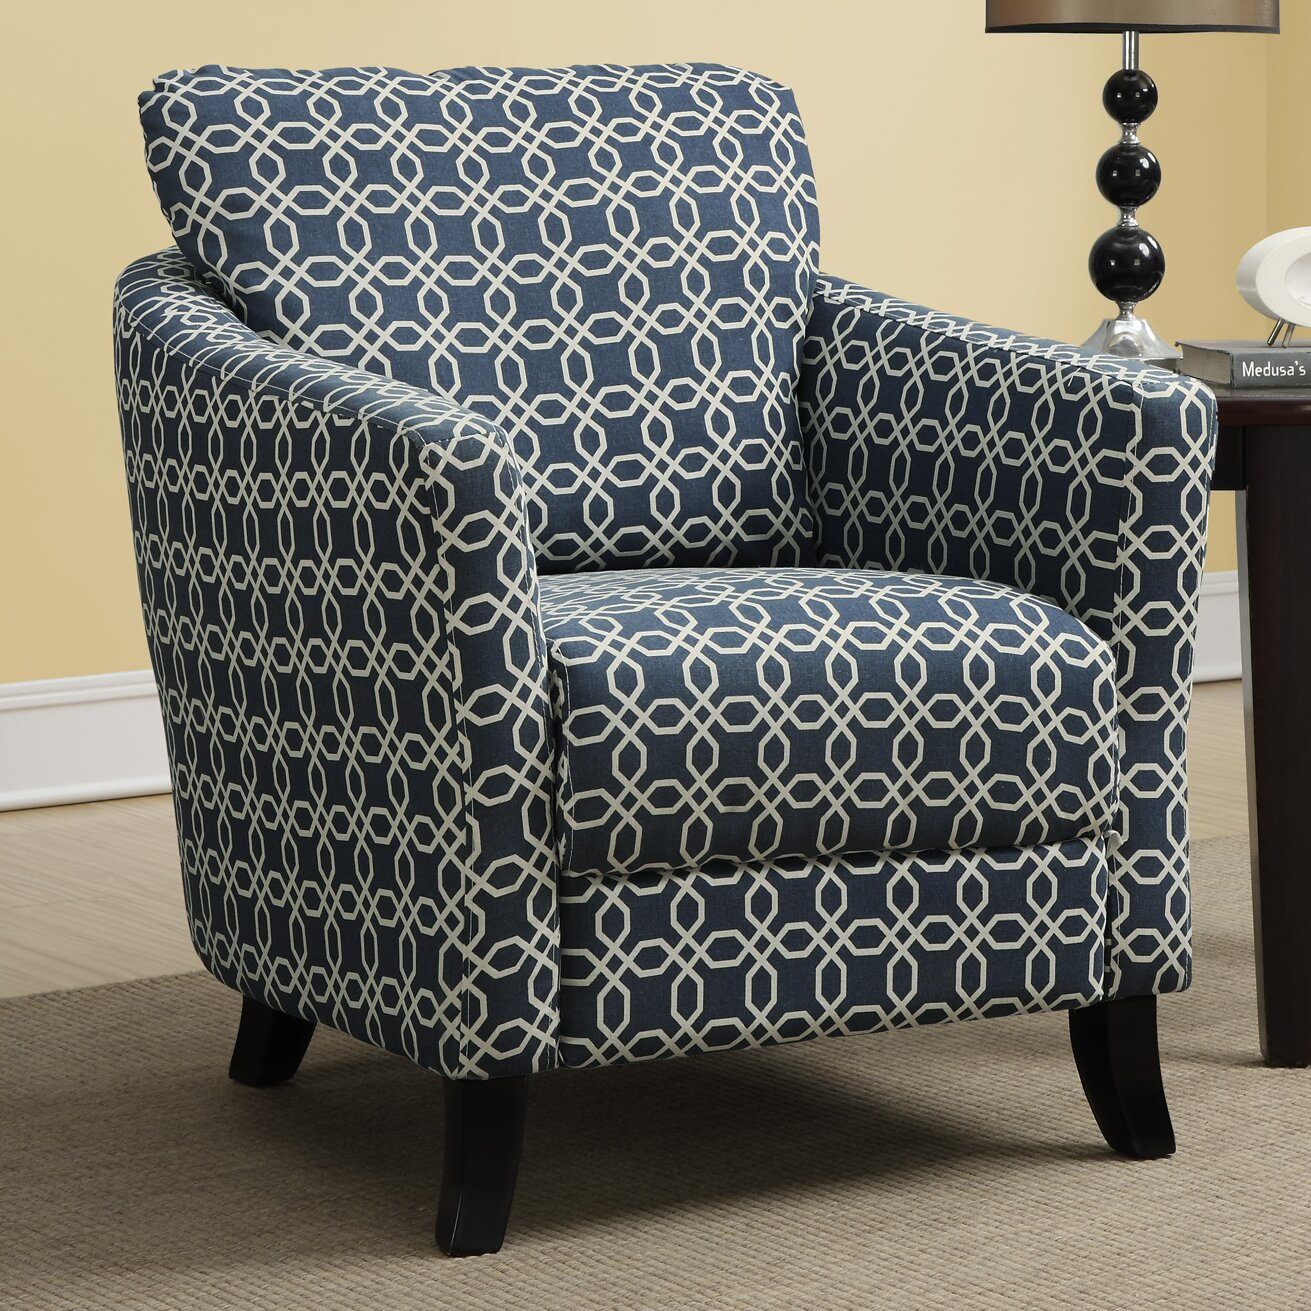 Monarch Specialties Inc I 8058 Fabric Accent Chair: Monarch Specialties Inc. Angled Kaleidoscope Arm Chair